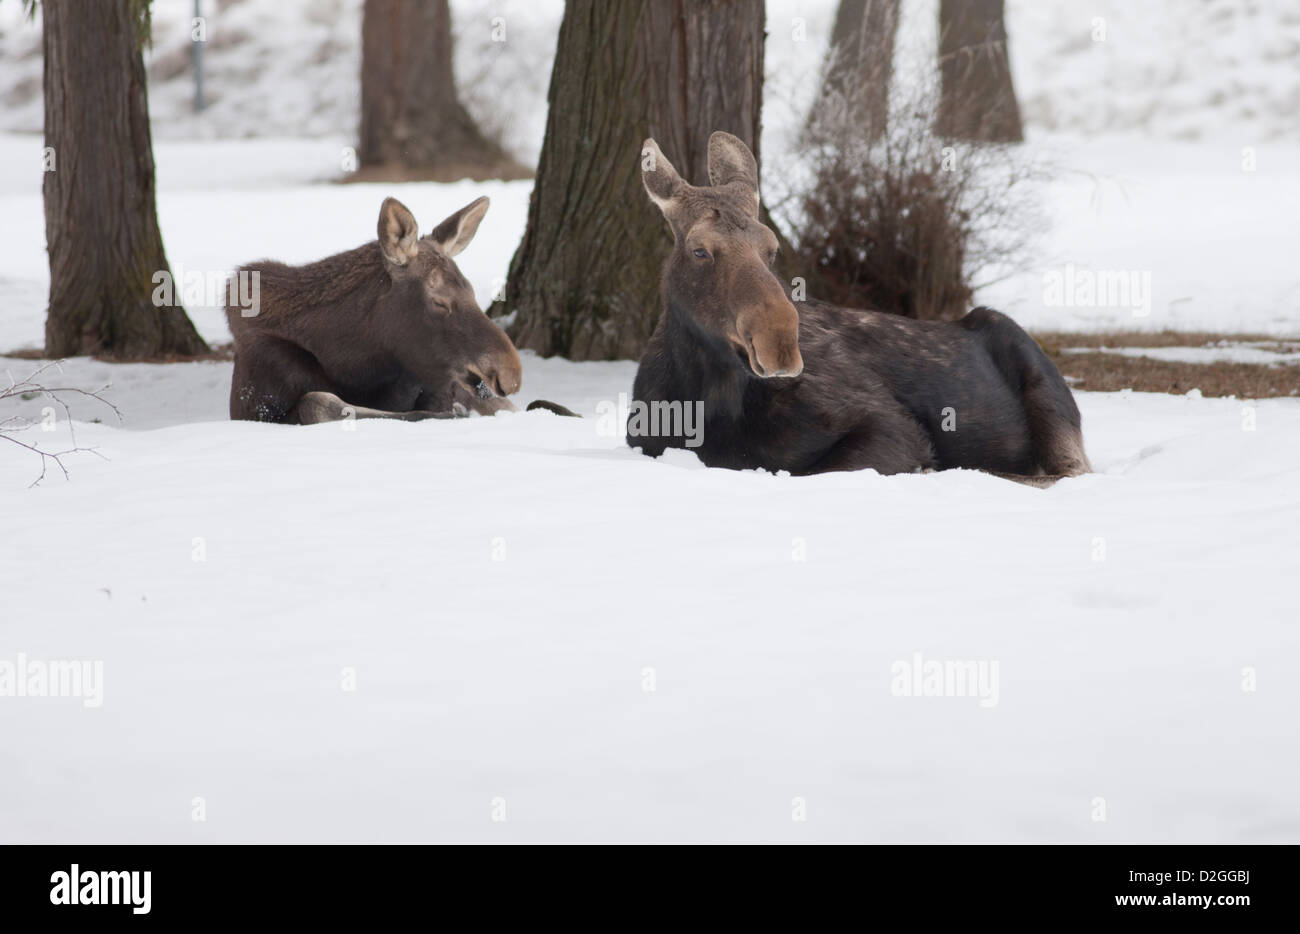 Moose lie in snow. - Stock Image